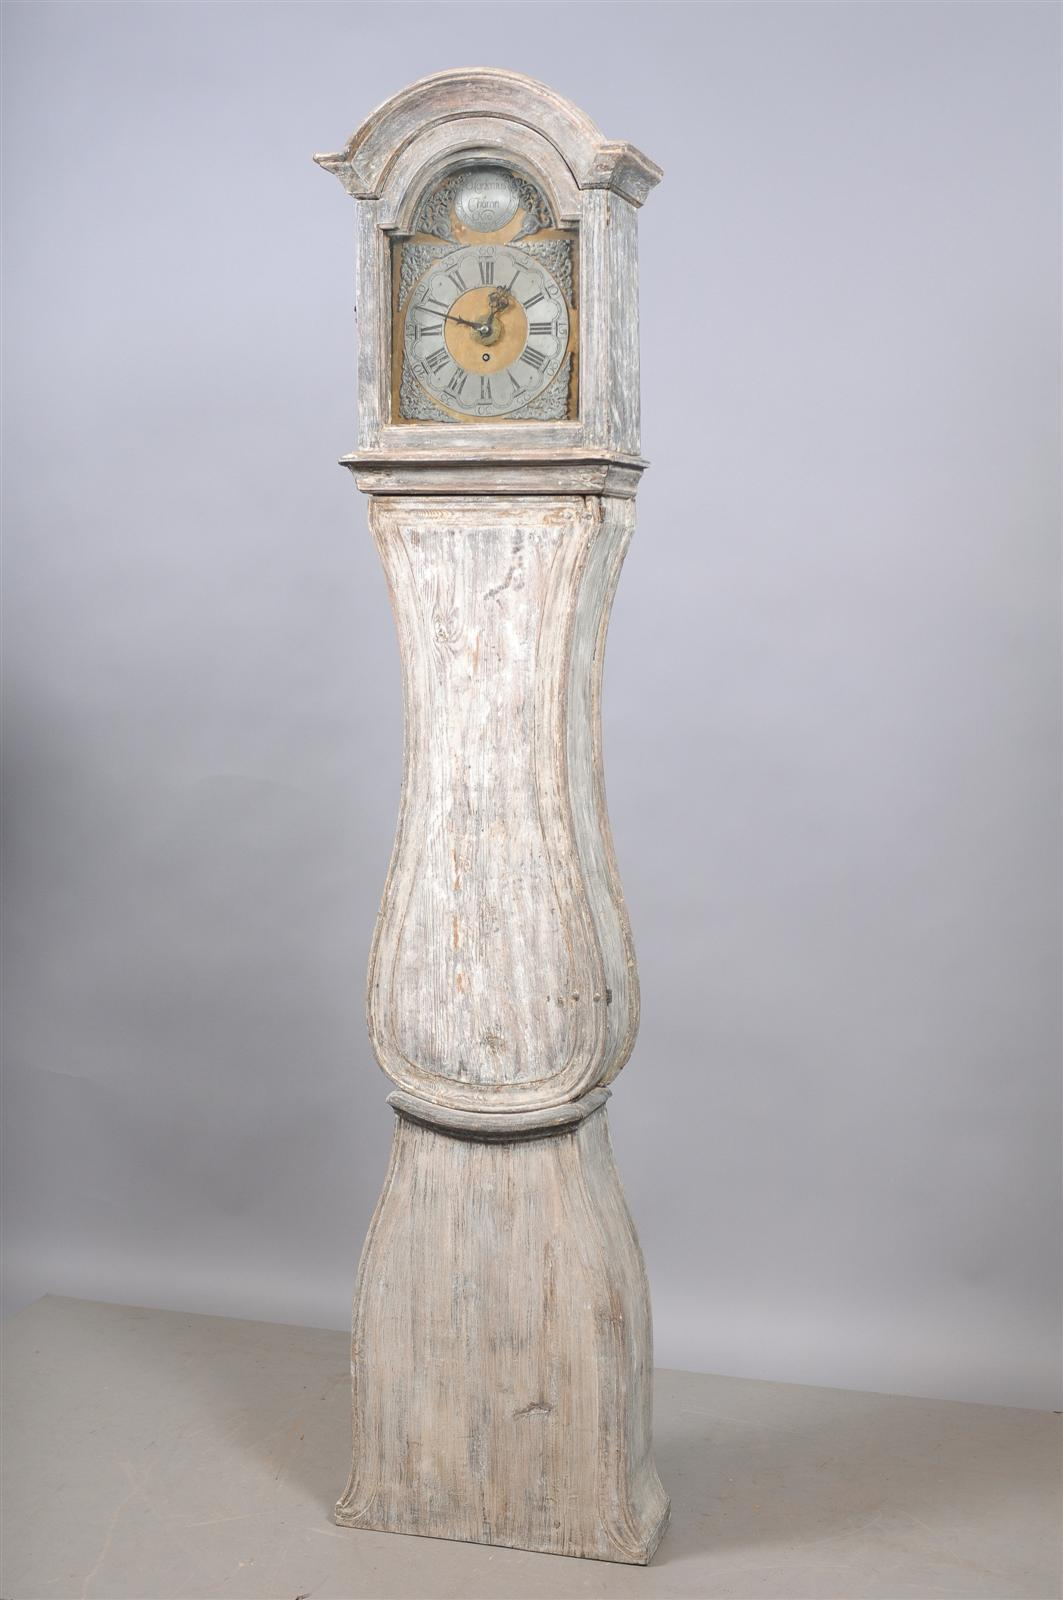 Painted Swedish tall case clock with brass and steel face, 19th century.